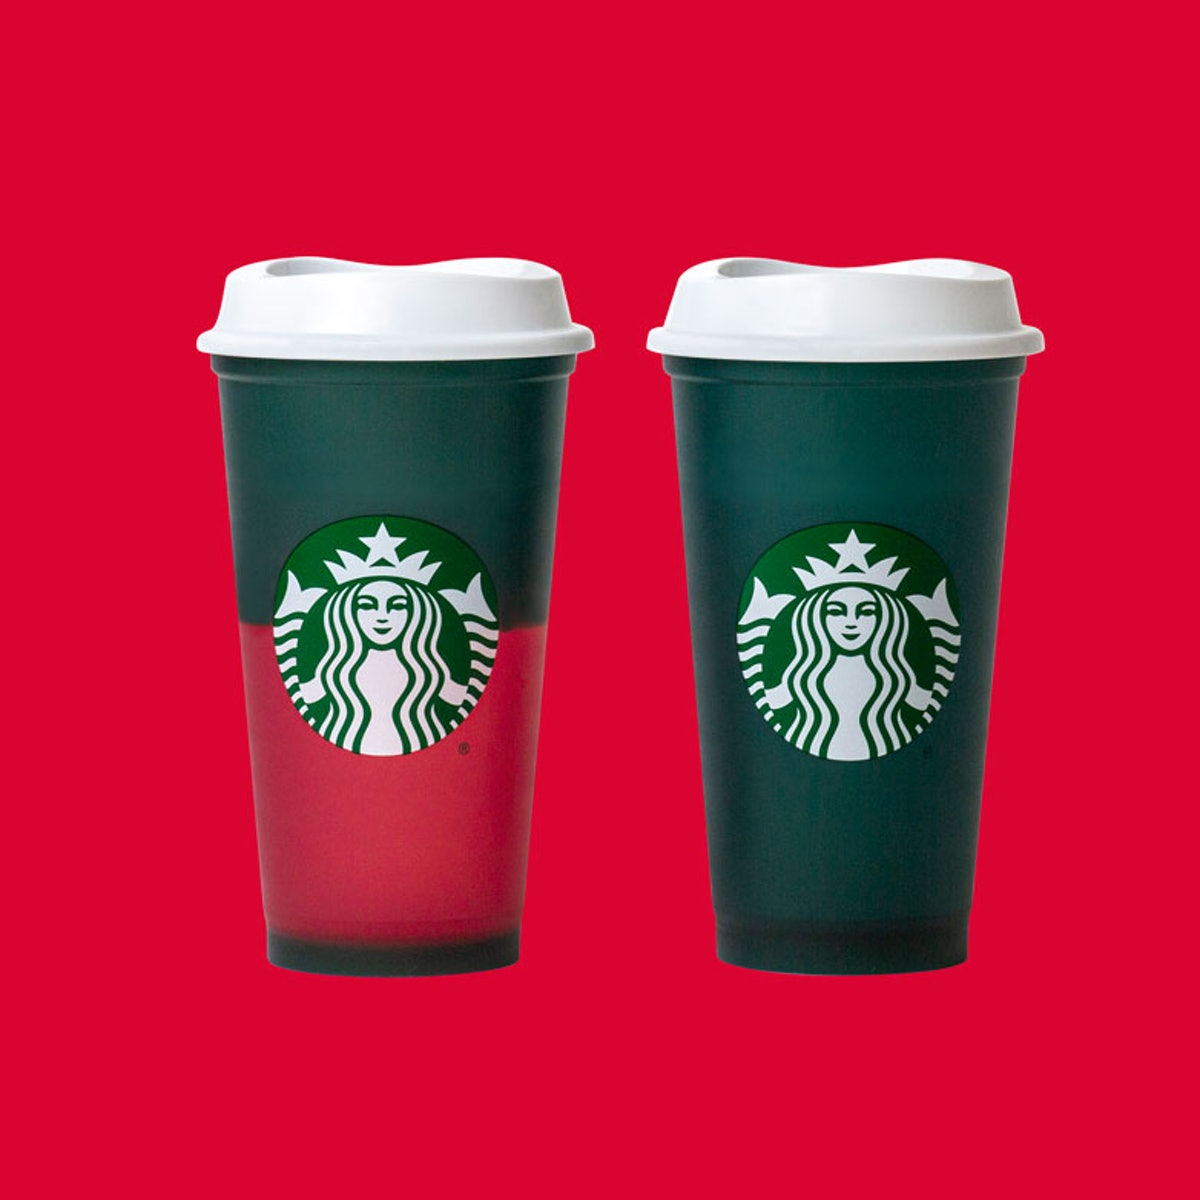 Starbucks is rolling out two color-changing hot cup designs.